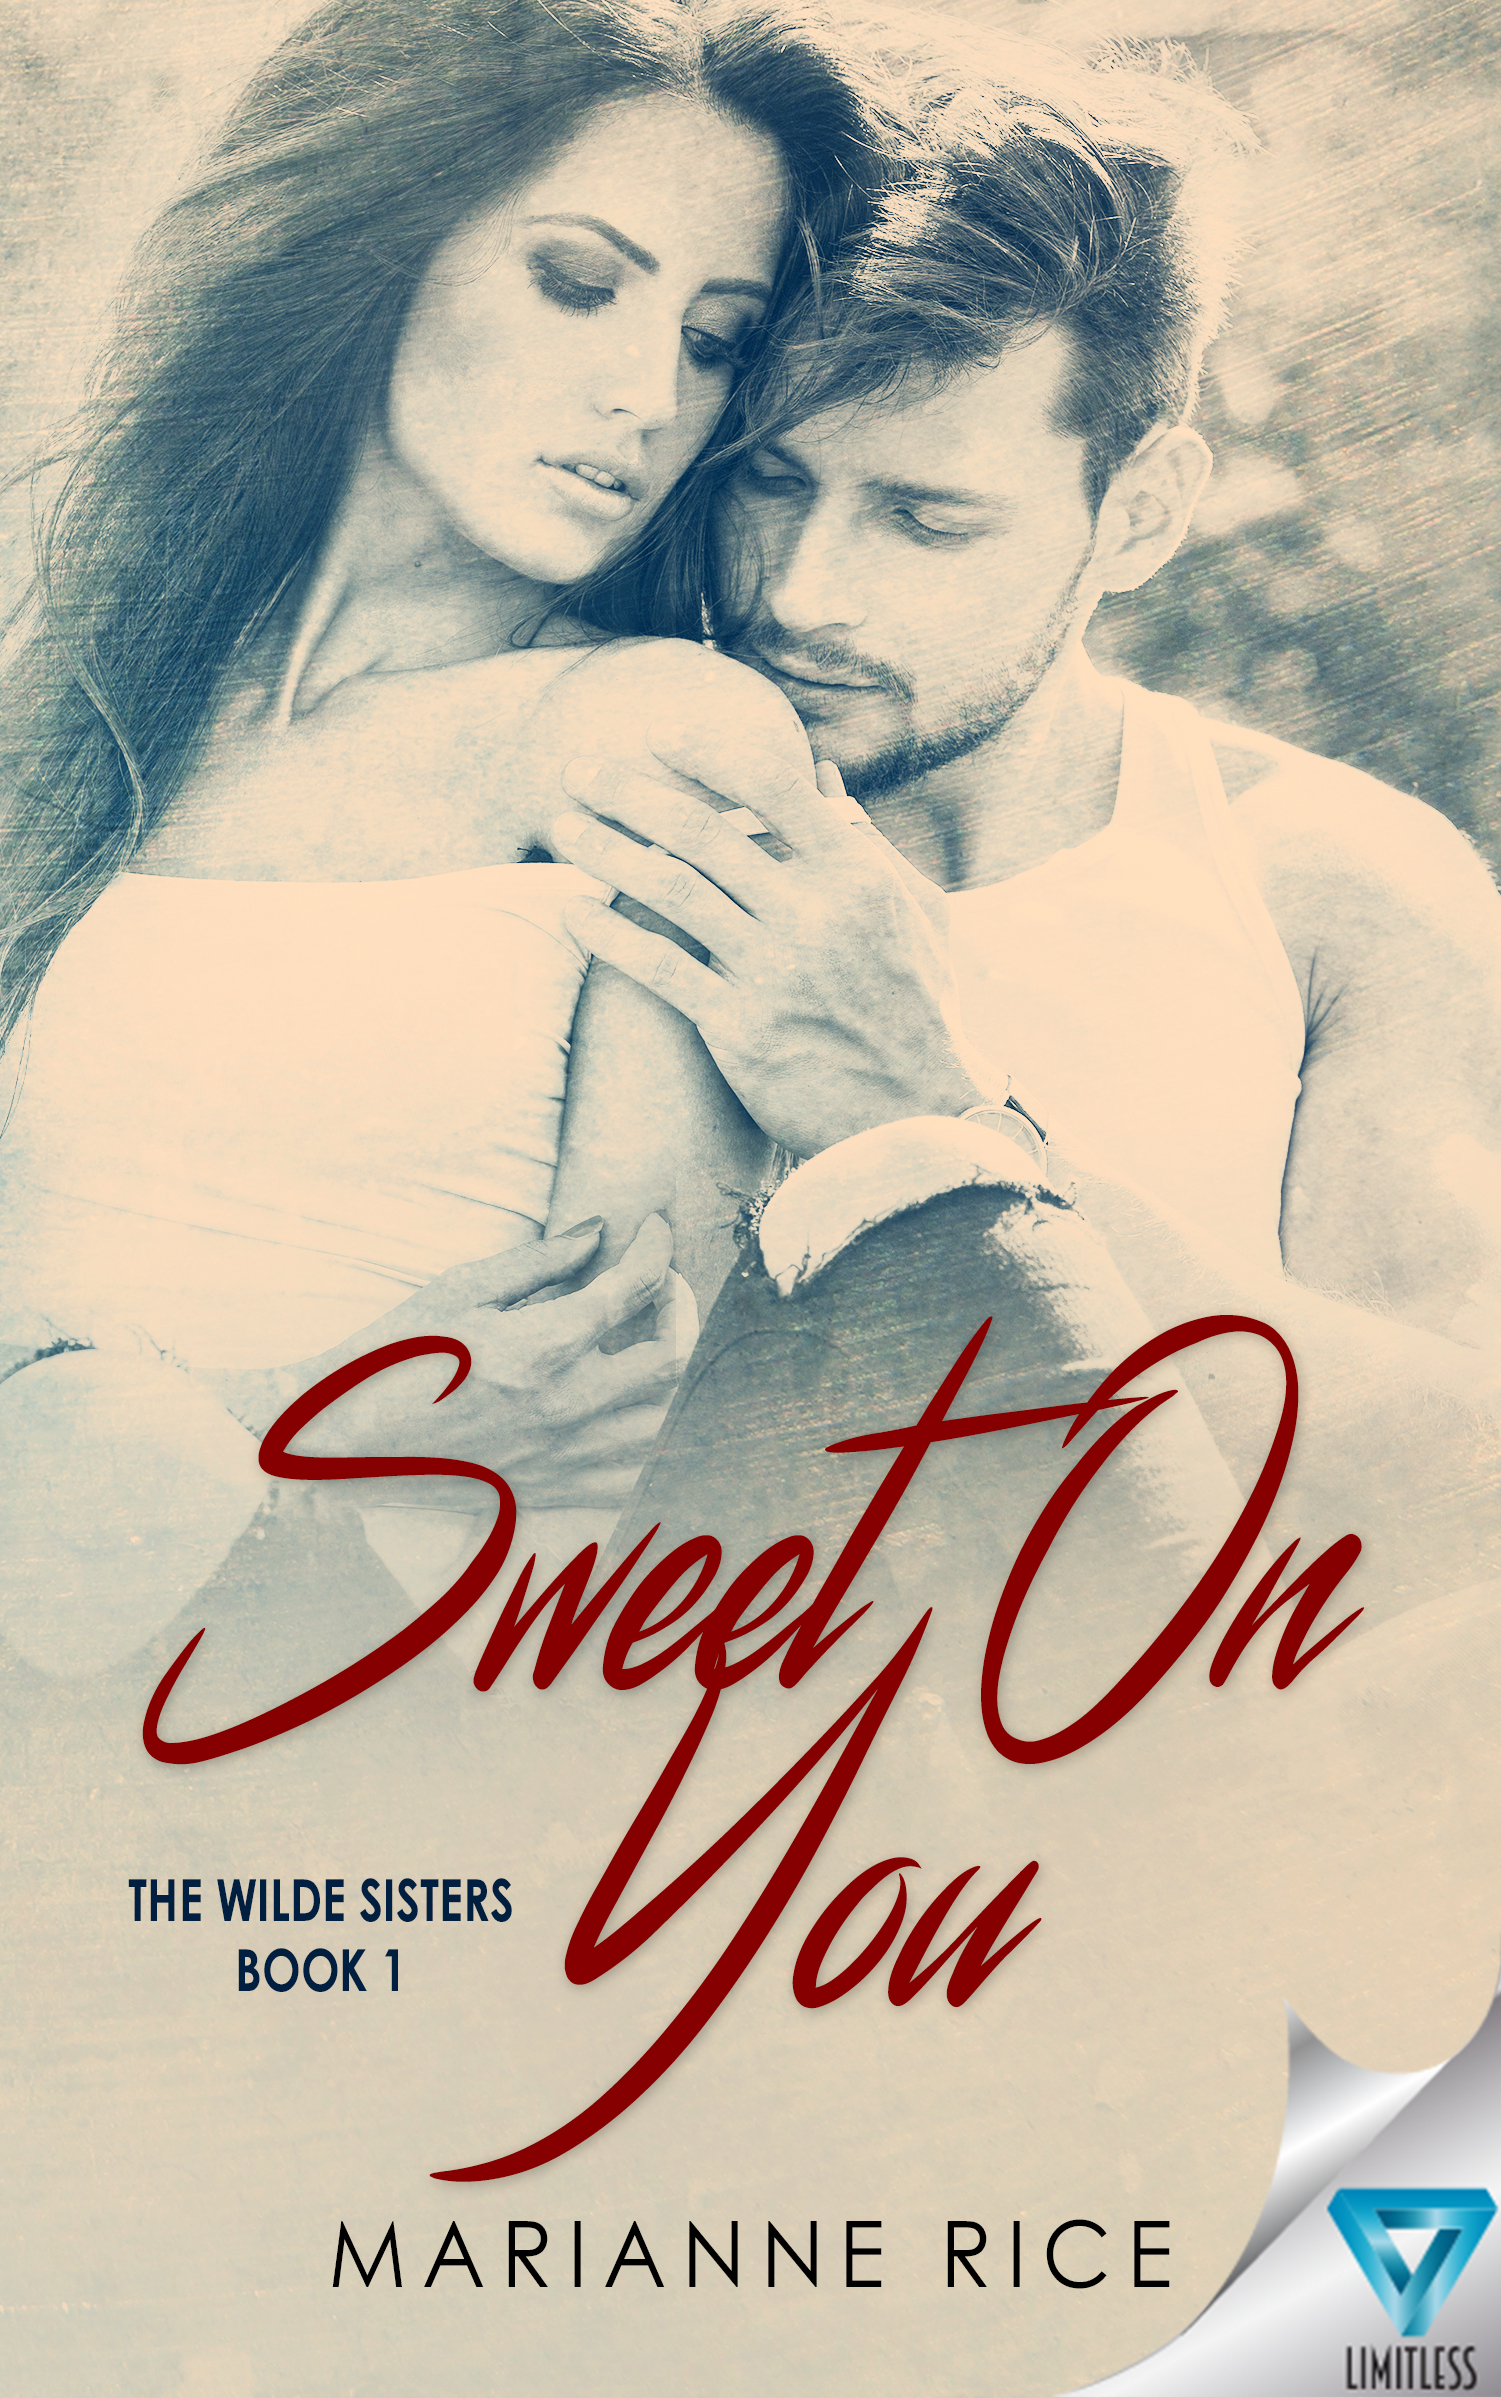 SWEET ON YOU BY MARIANNE RICE